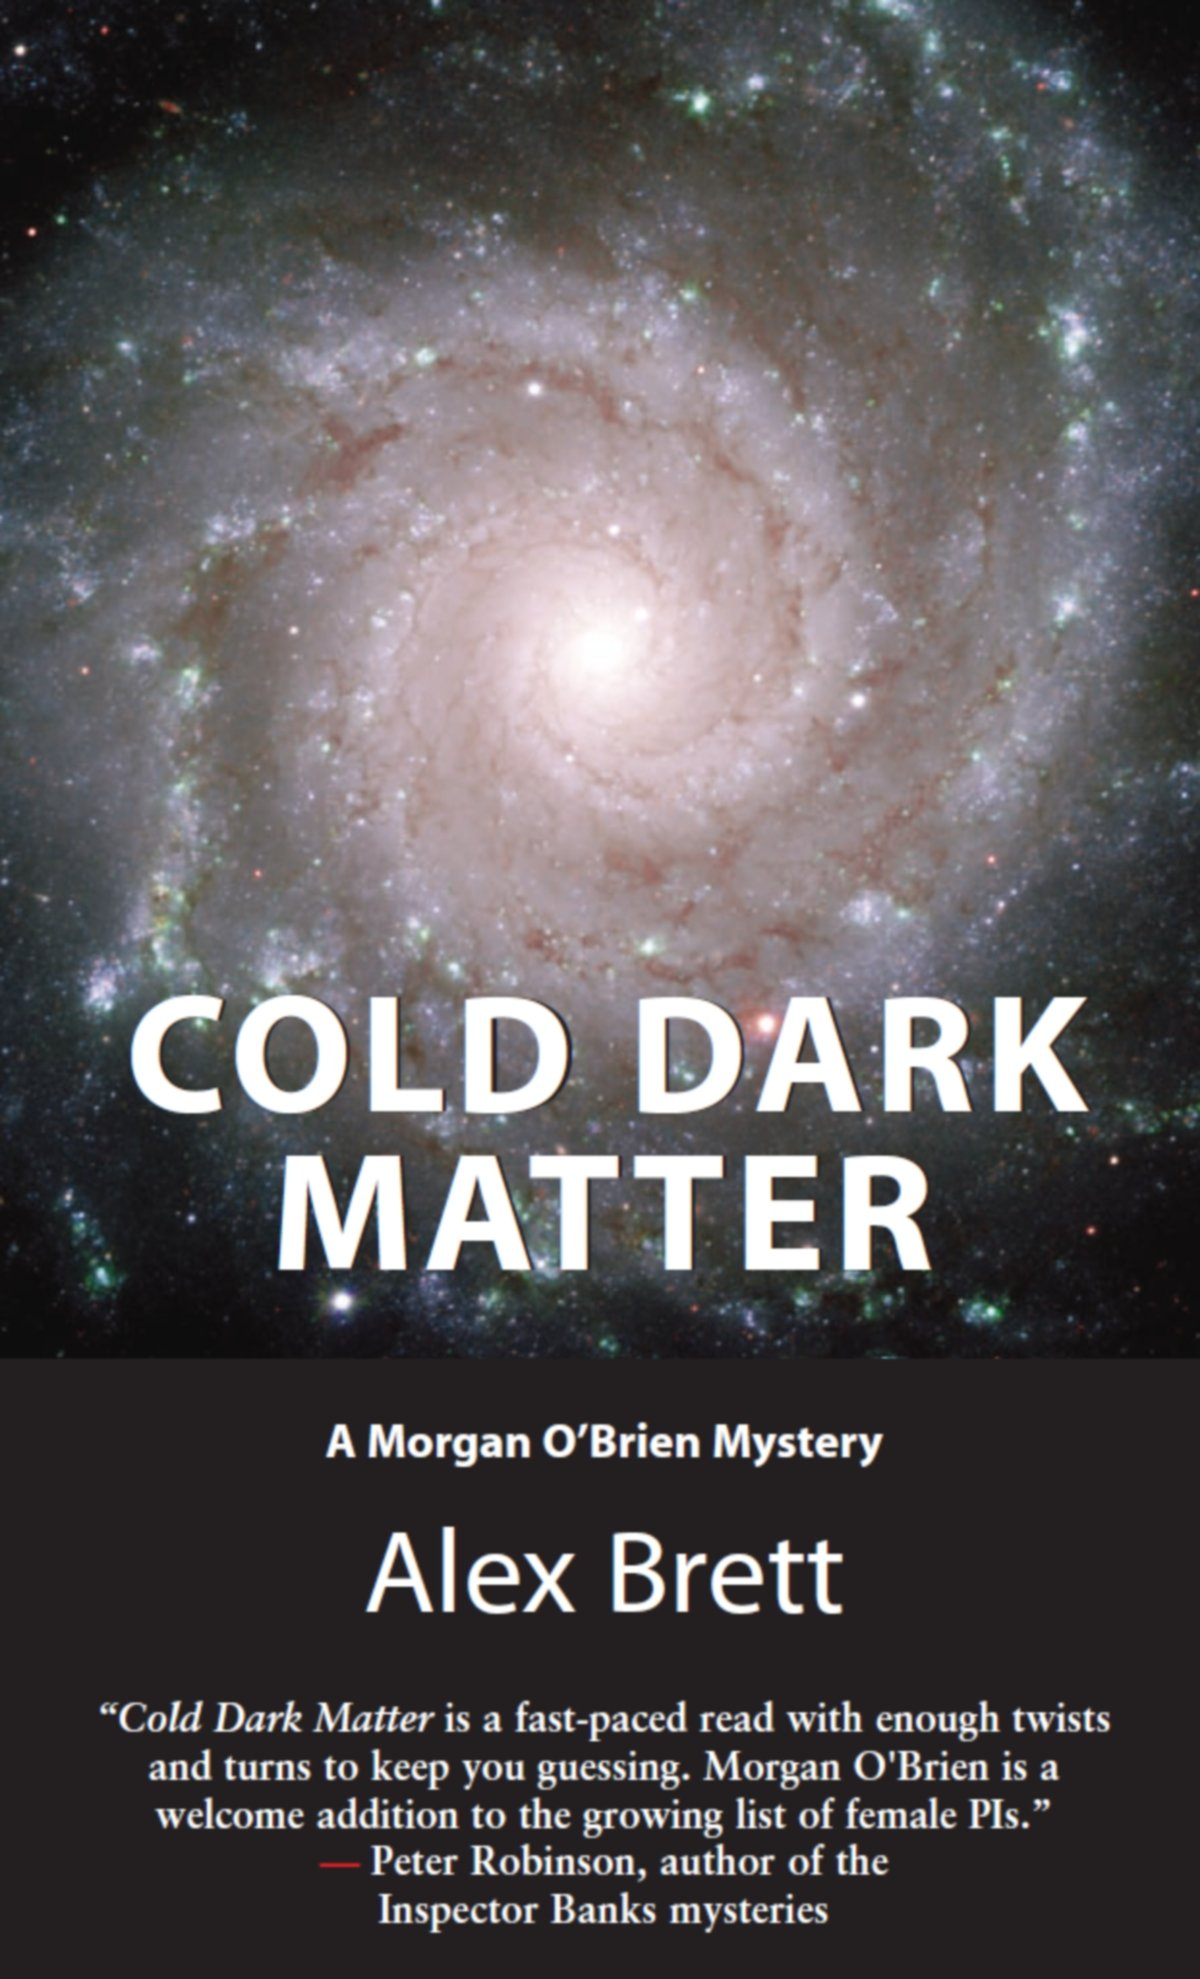 COLD DARK MATTER COVER HIGH RES